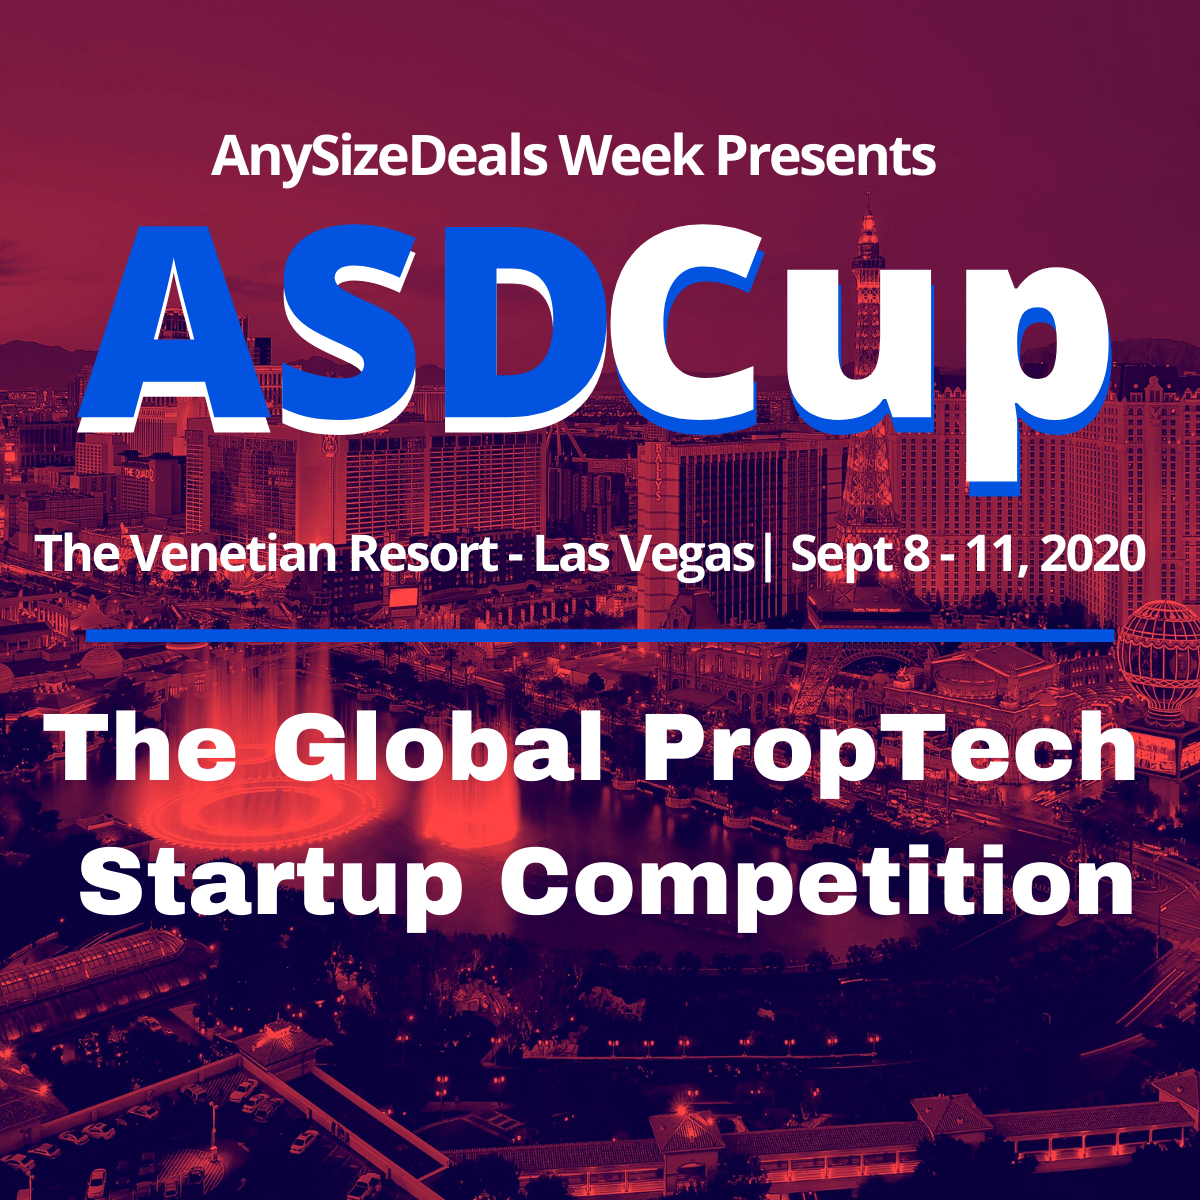 https://anysizedealsweek.com/wp-content/uploads/2020/06/ASDCup-Red-Cover-Vegas.png